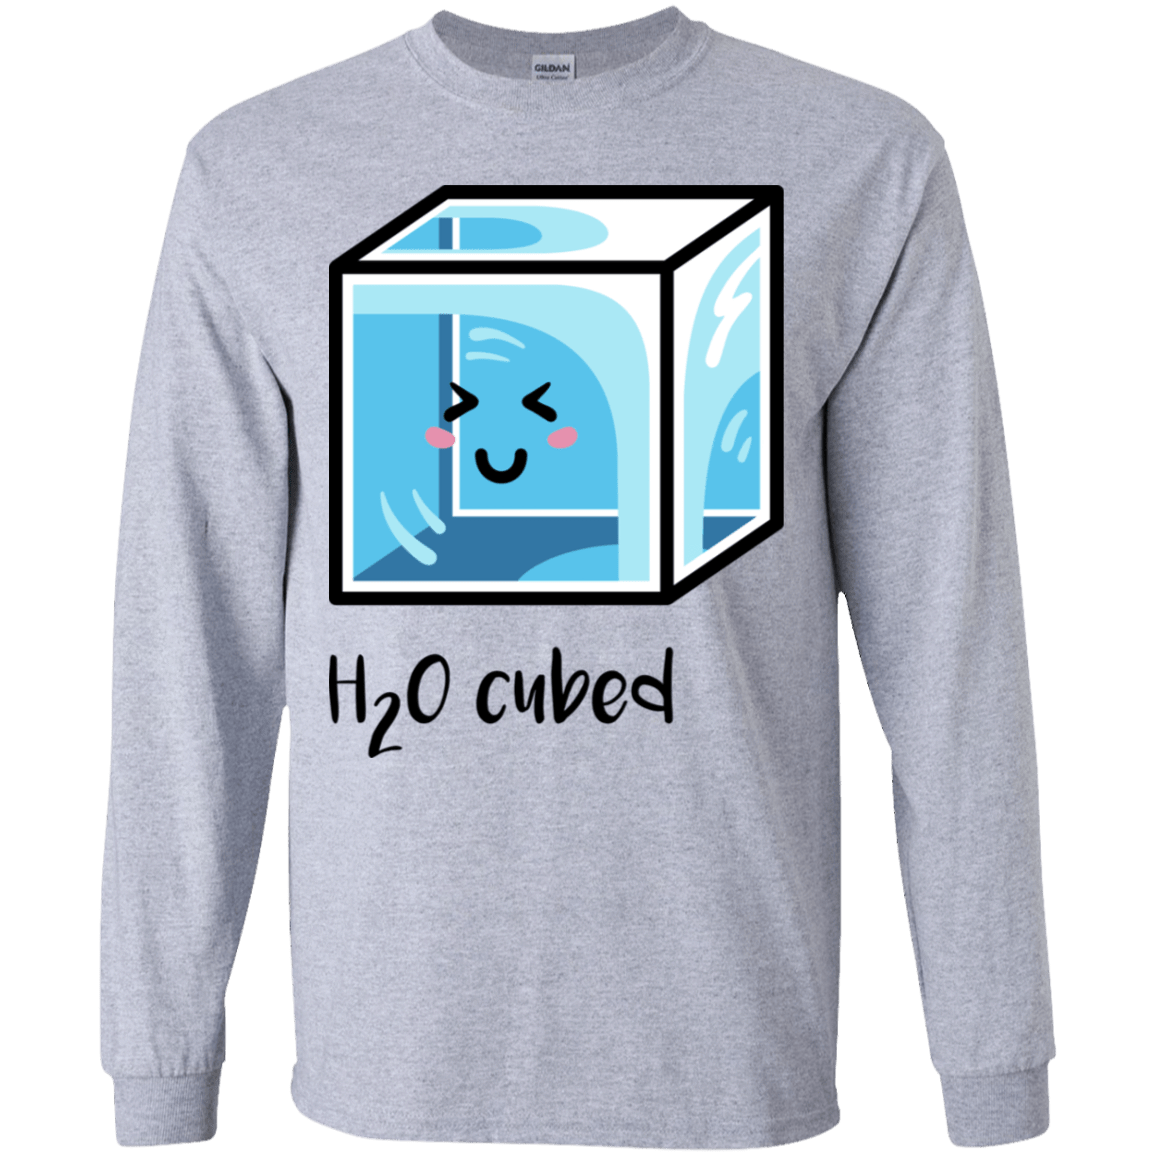 T-Shirts Sport Grey / YS H2O Cubed Youth Long Sleeve T-Shirt